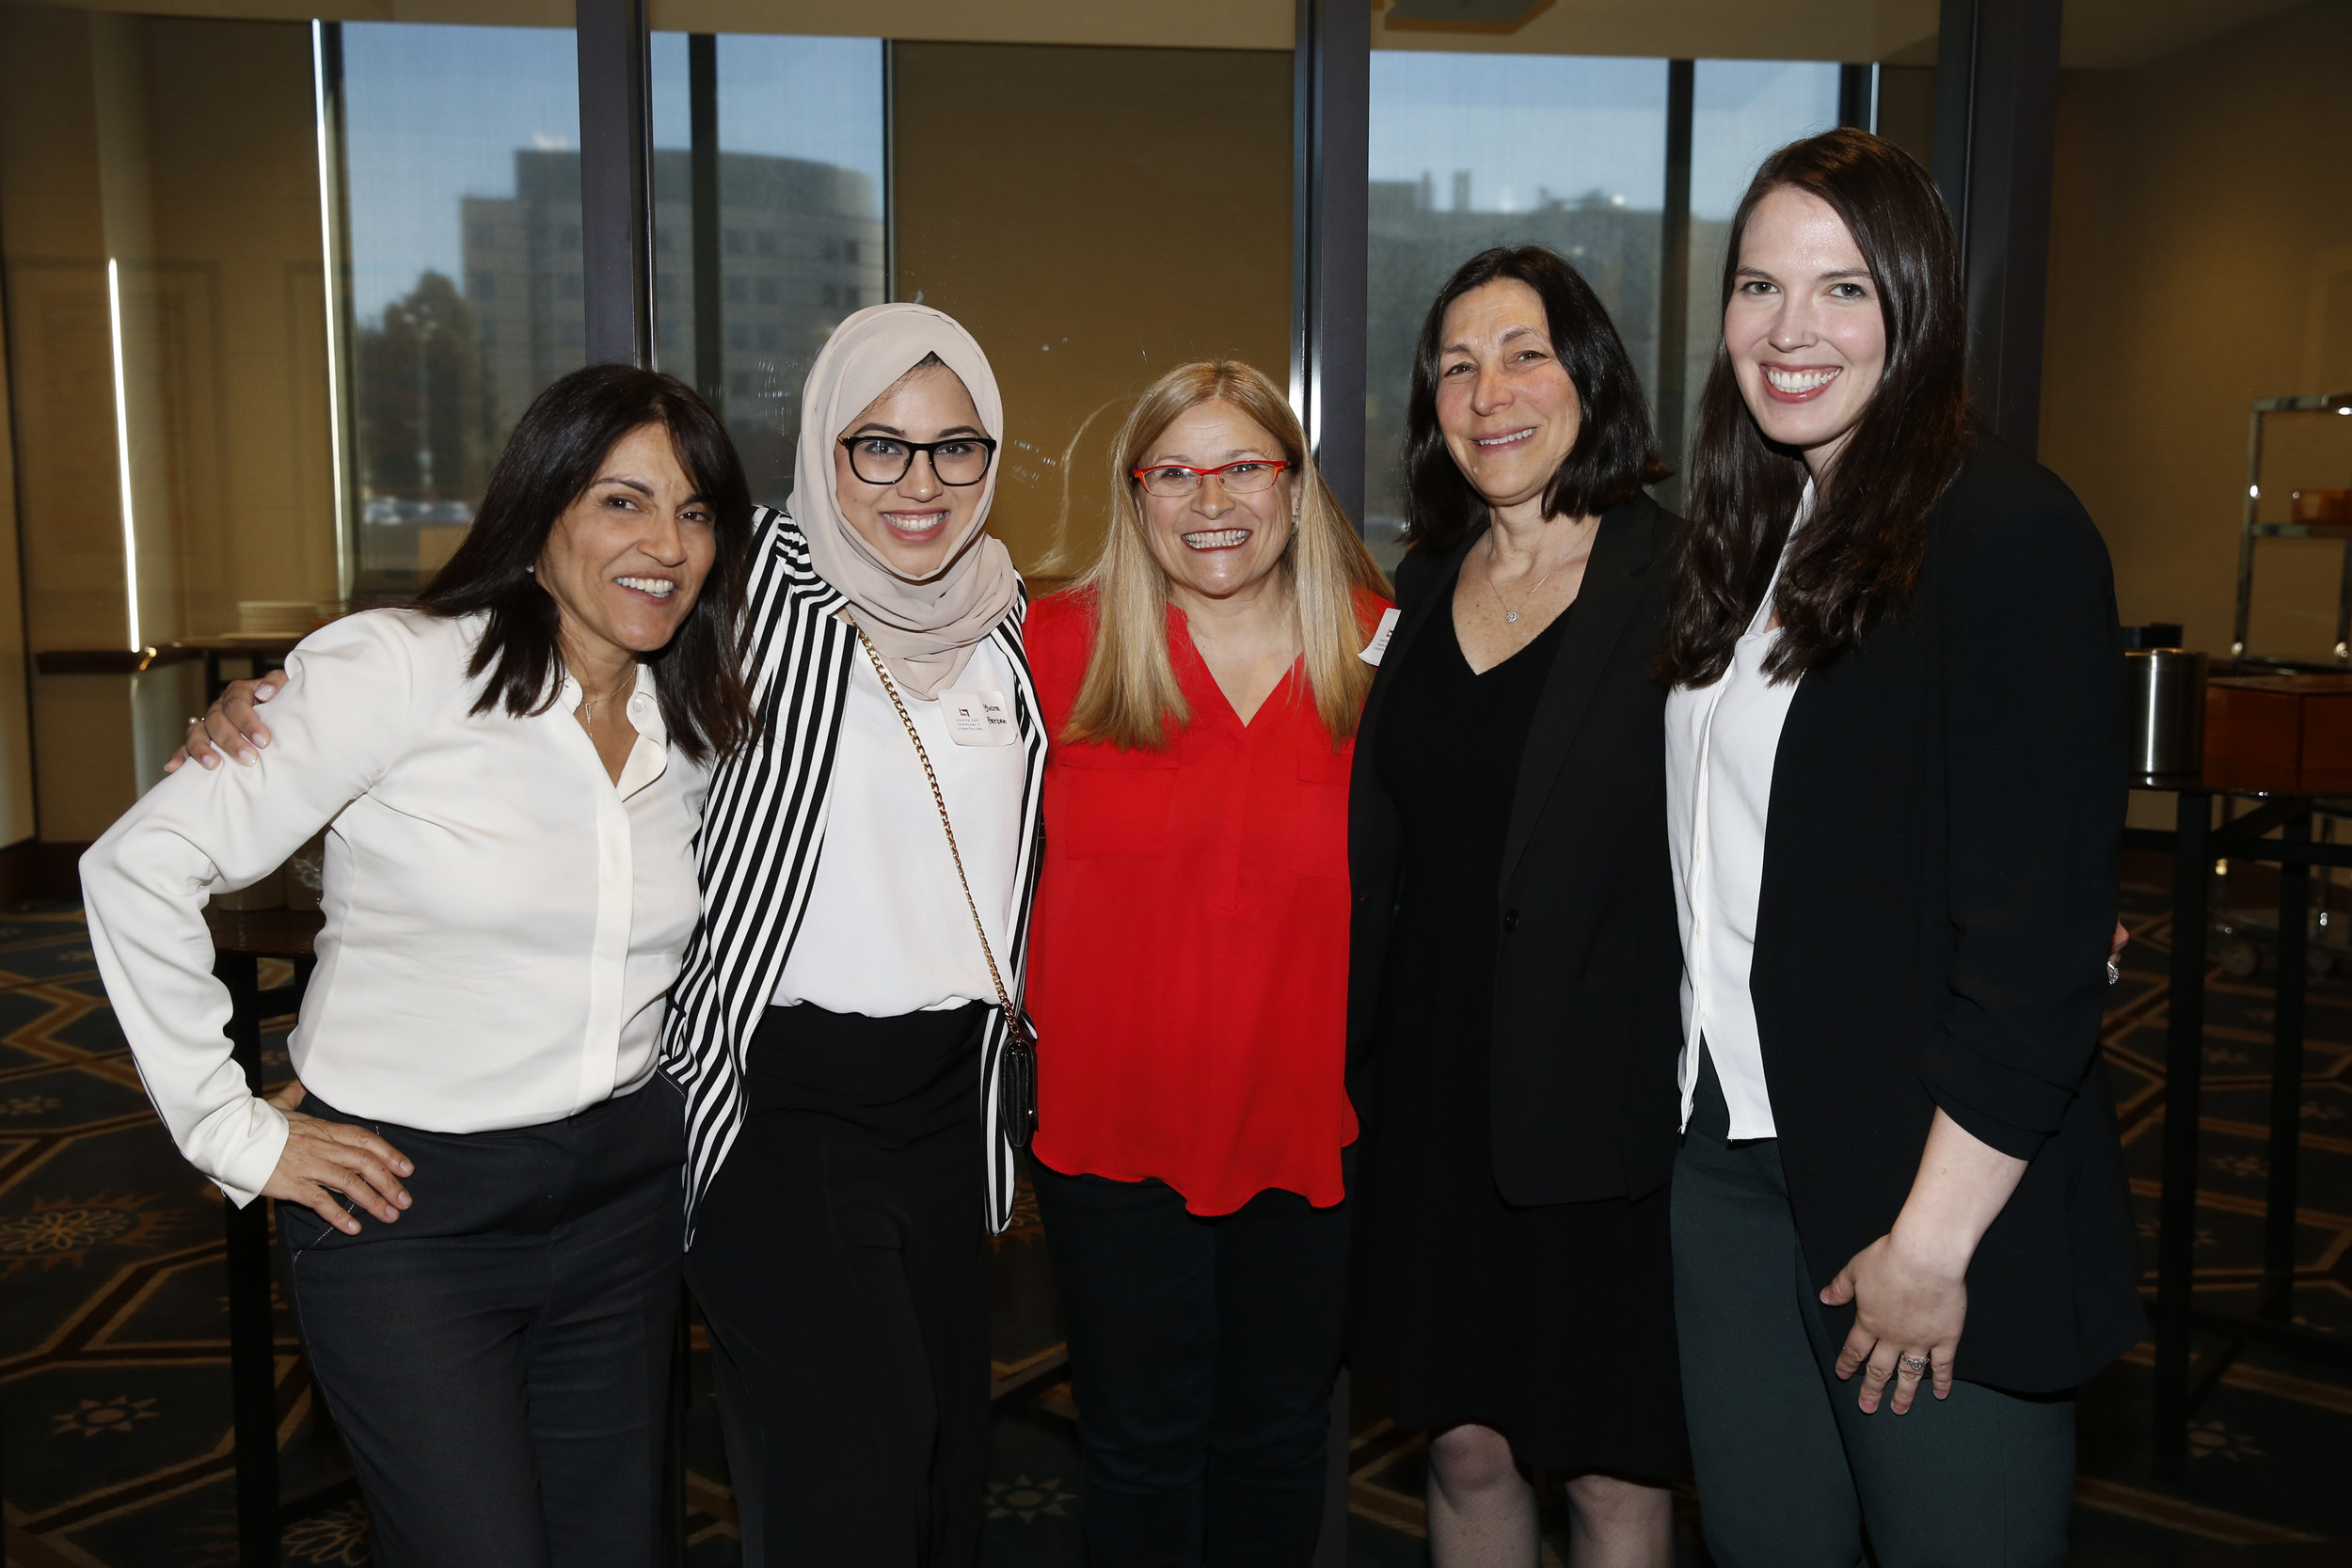 Founder and Executive Director of CSS Yalda T. Uhls (left), Project Manager of Special Events for CSS Yusra Farzan (center left), Co-Director of CSS Kim Wilson (center), Chief Administrative Officer of CSS Louise Zeitzew (center right), Co-Director Colleen Russo Johnson (right)